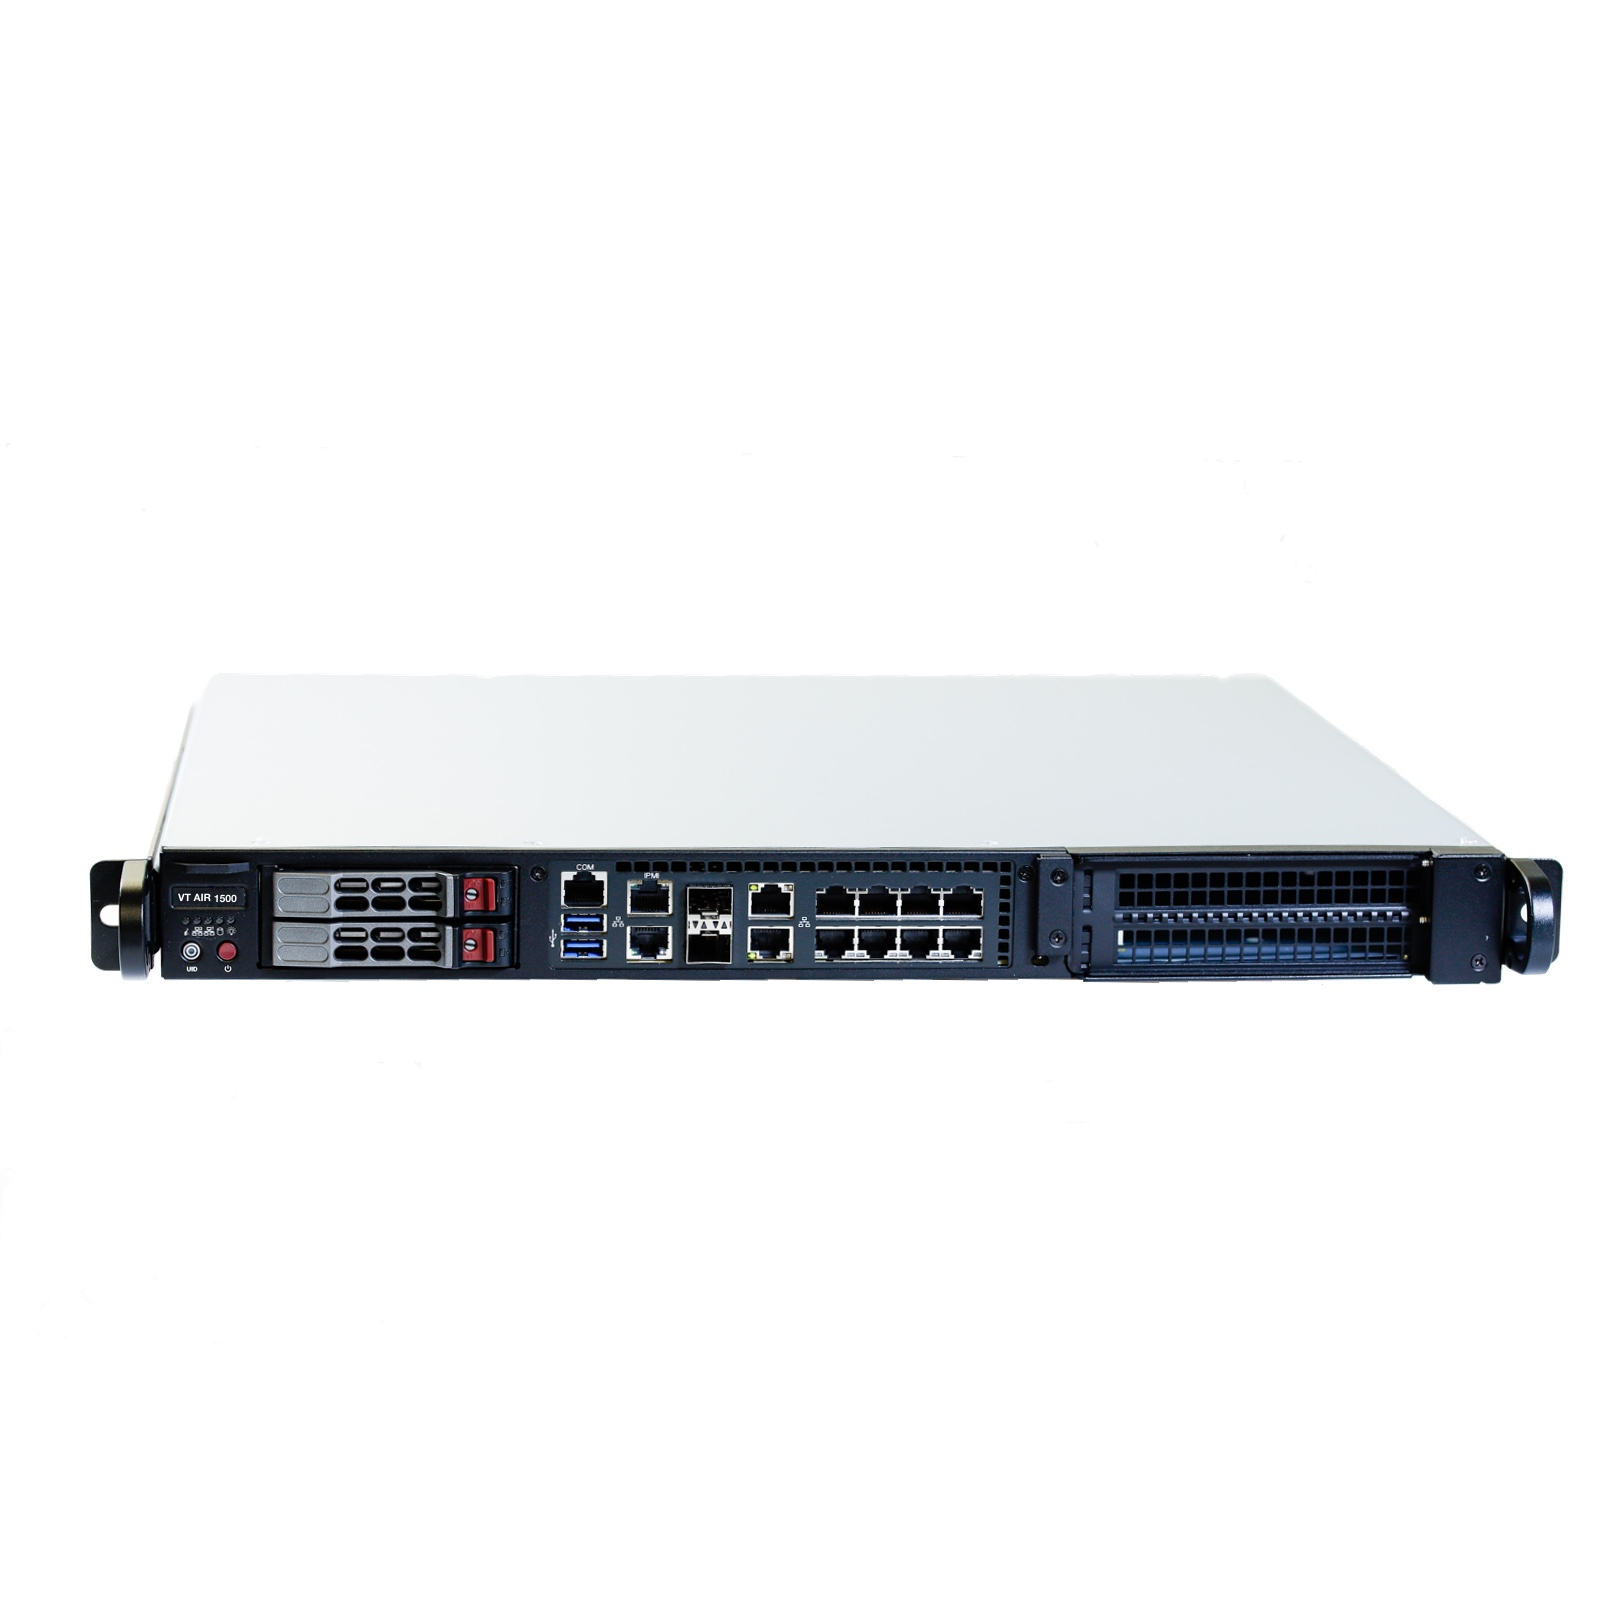 VT AIR 1500 Enterprise Firewall Front